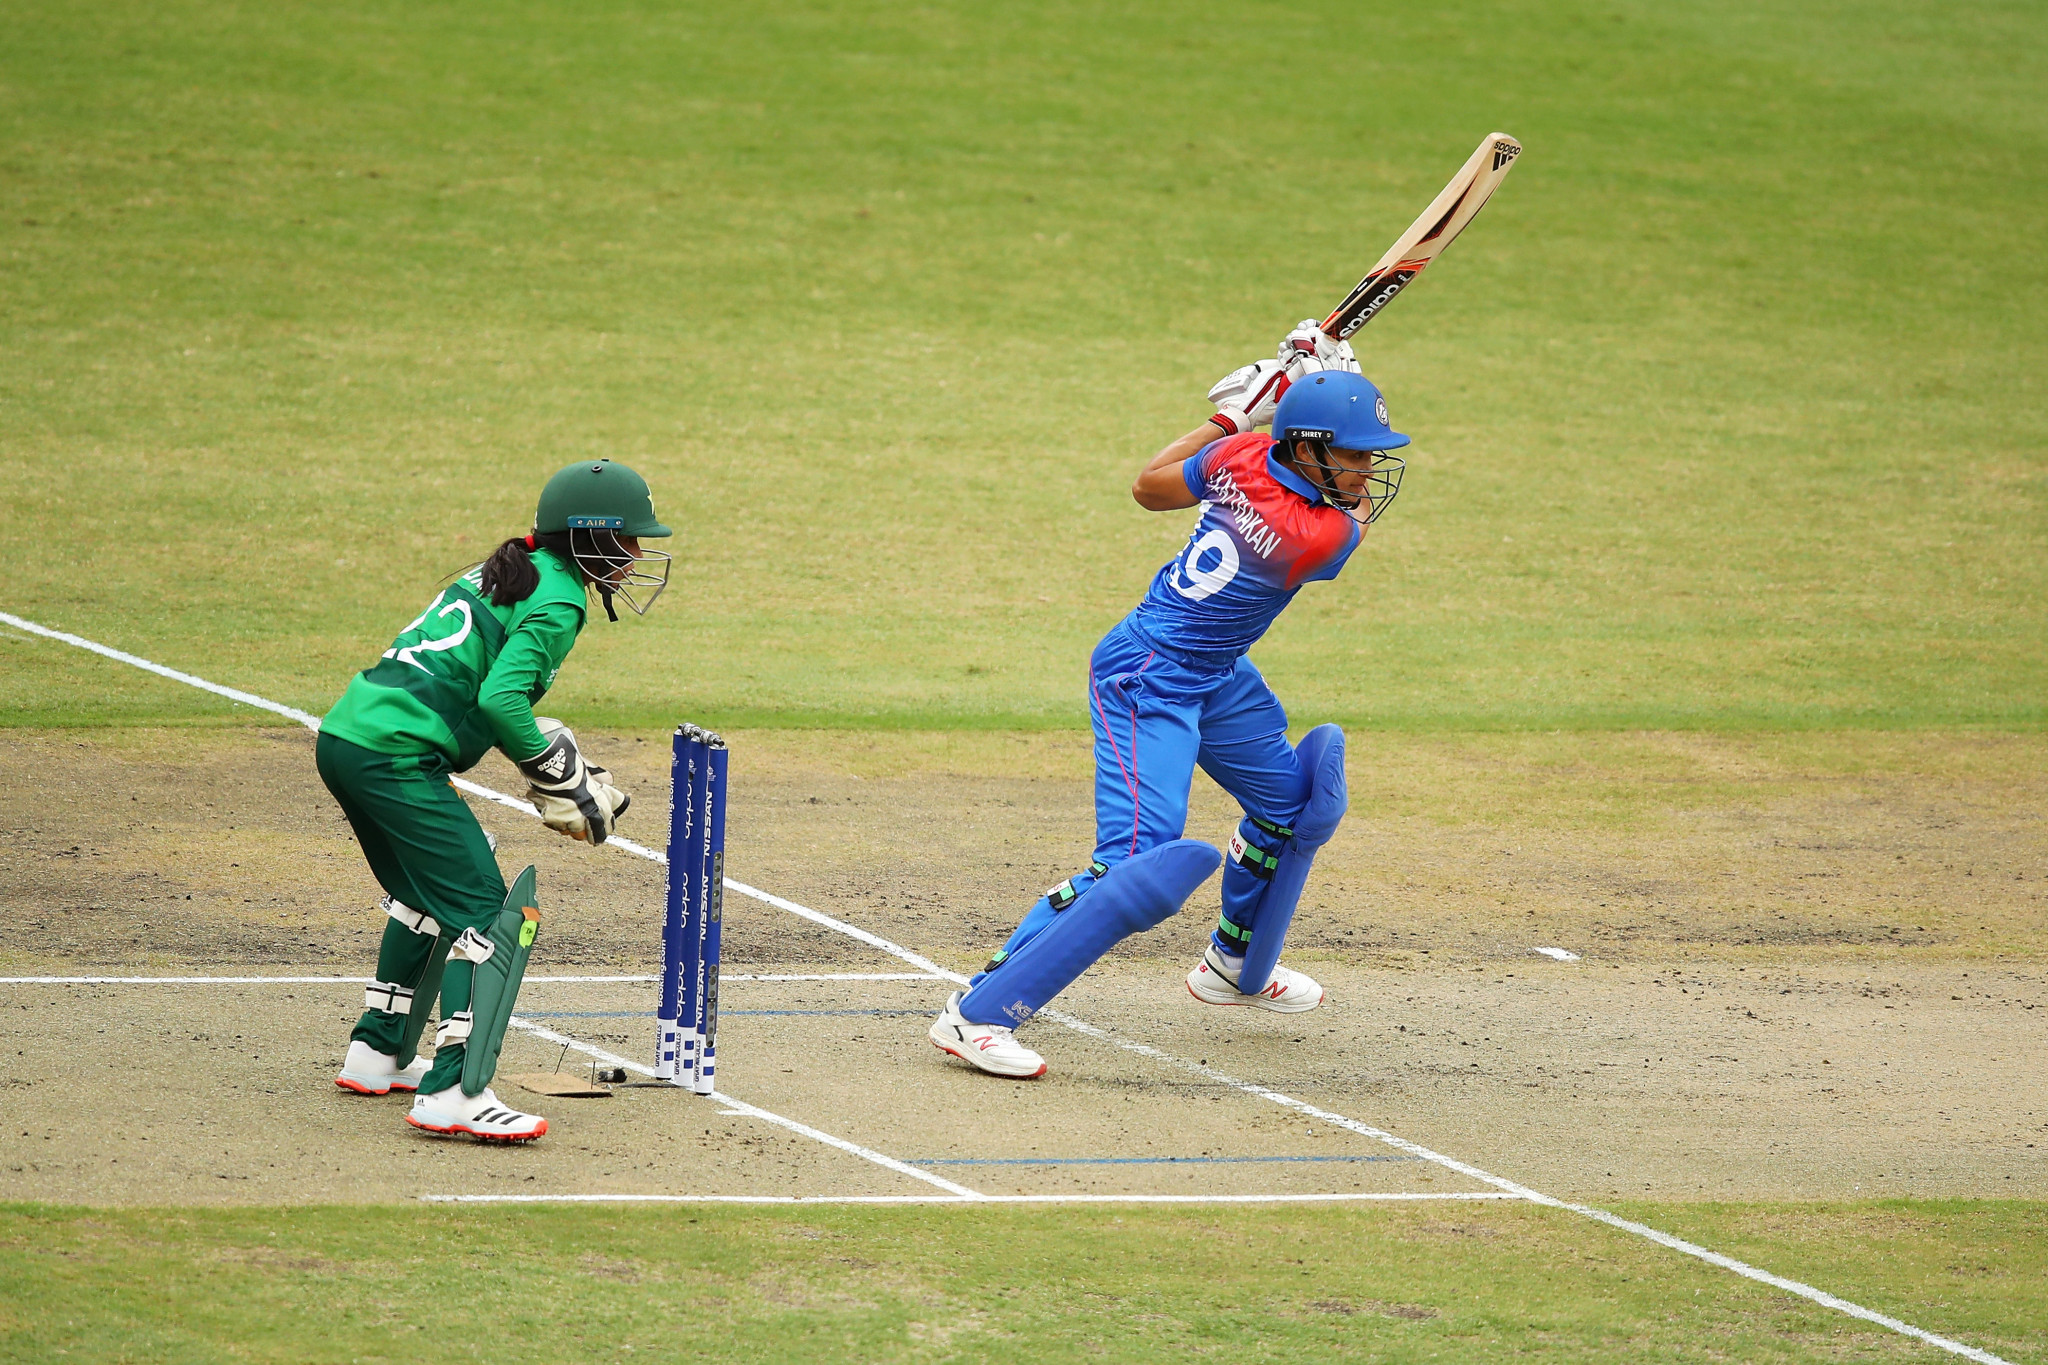 ICC Women's T20 World Cup moved to 2023 due to calendar congestion in 2022